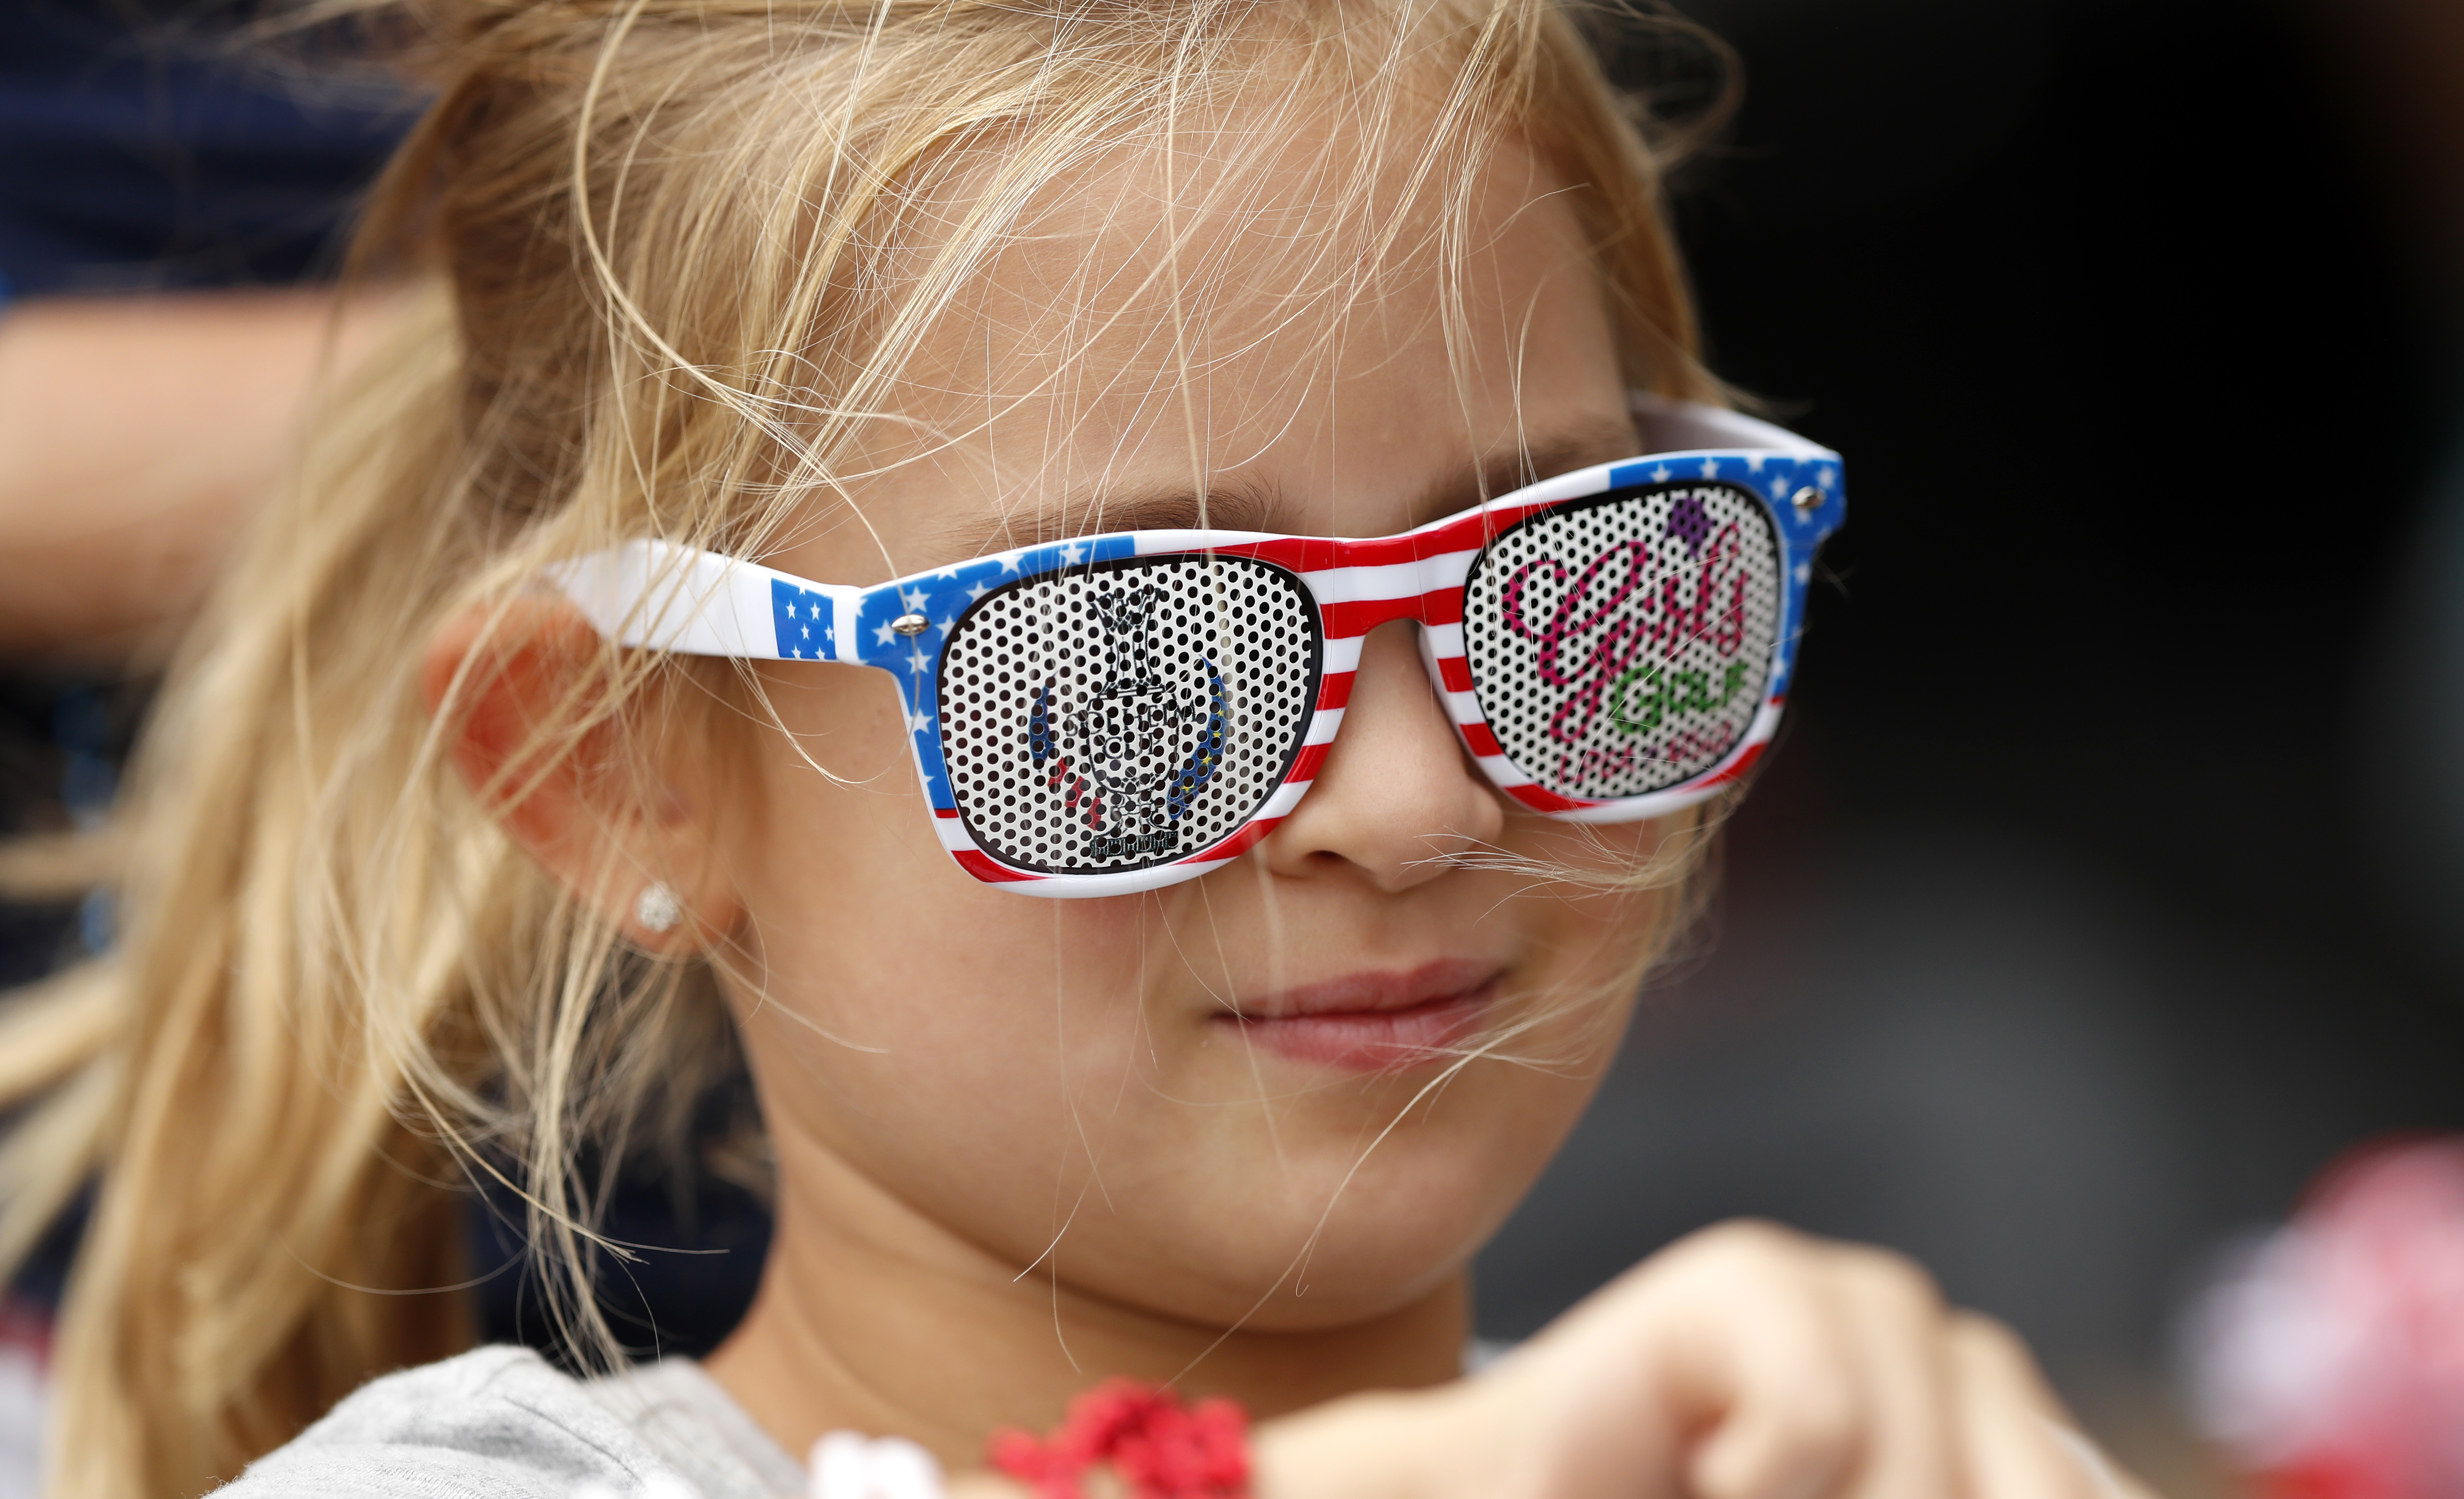 A young fan waits for an autograph during practice for the Solheim Cup golf tournament, Thursday, Aug. 17, 2017, in West Des Moines, Iowa. (AP Photo/Charlie Neibergall)